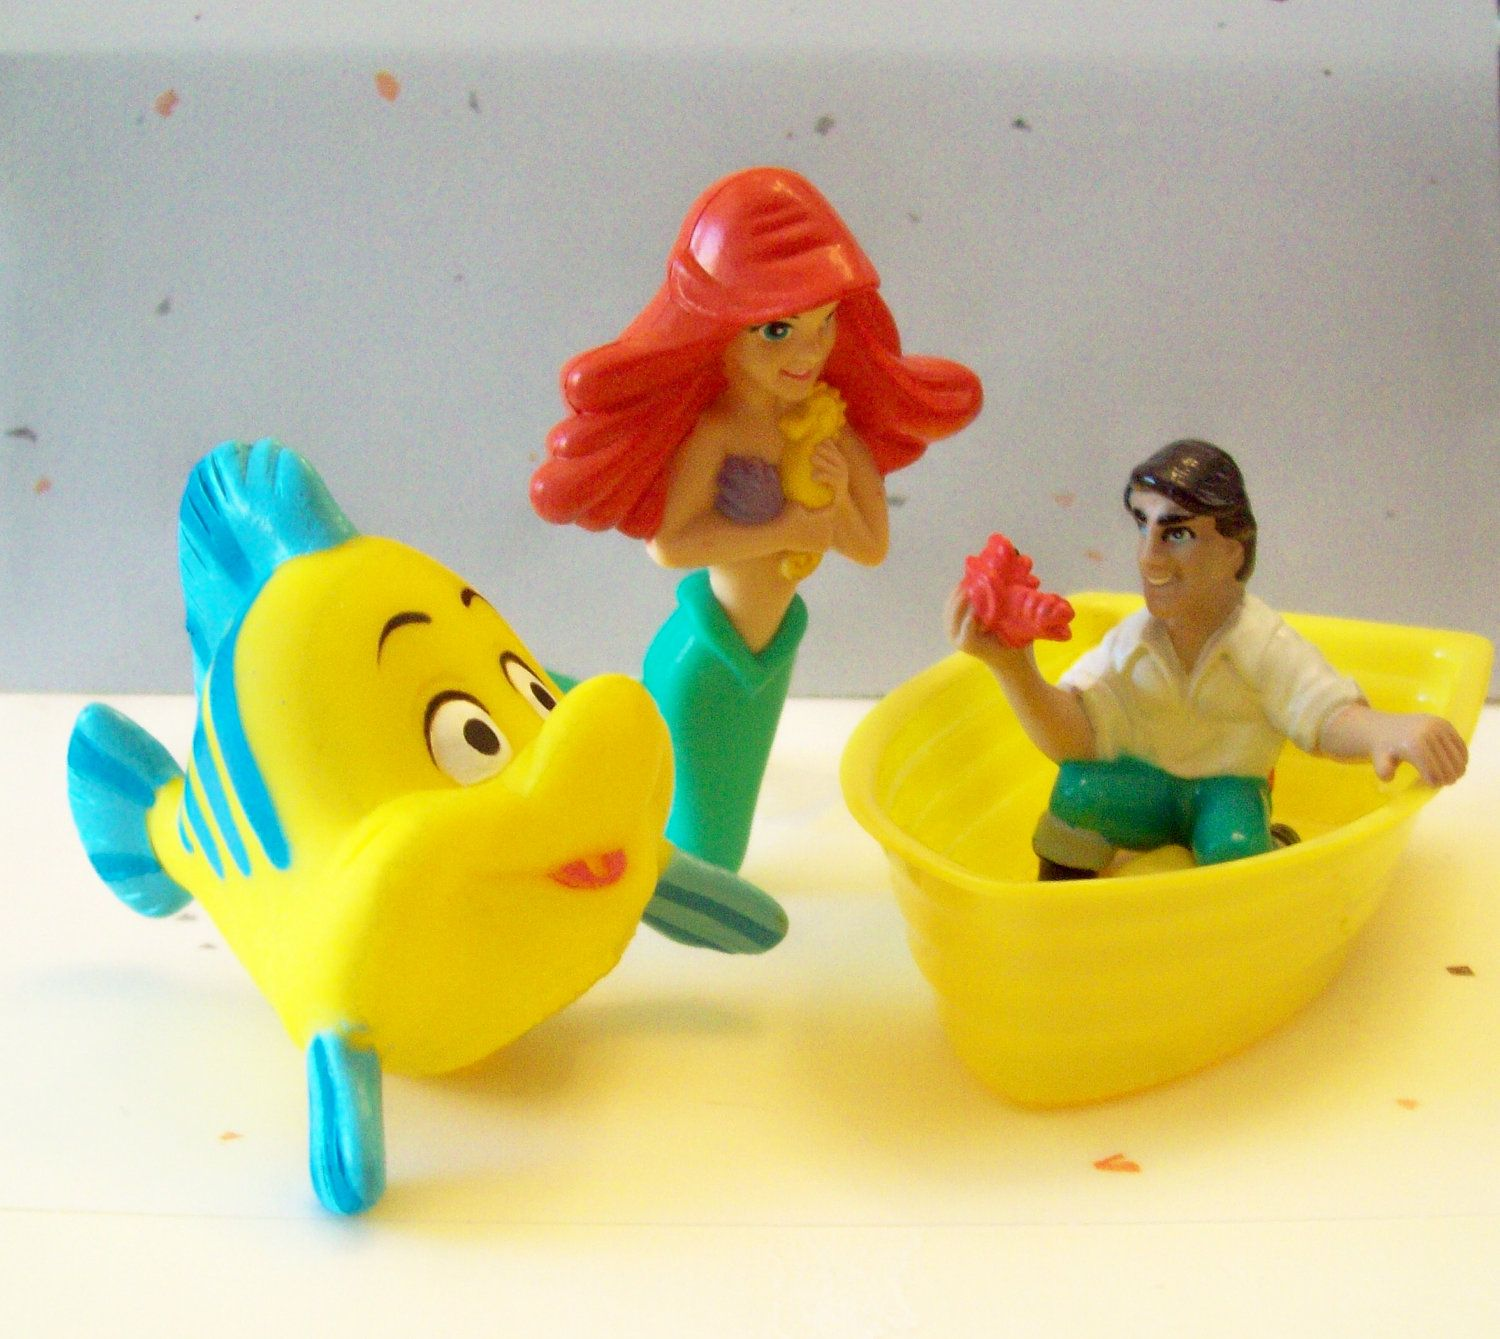 Vintage McDonalds Toy NEVER USED 1989 Disney s Little Mermaid